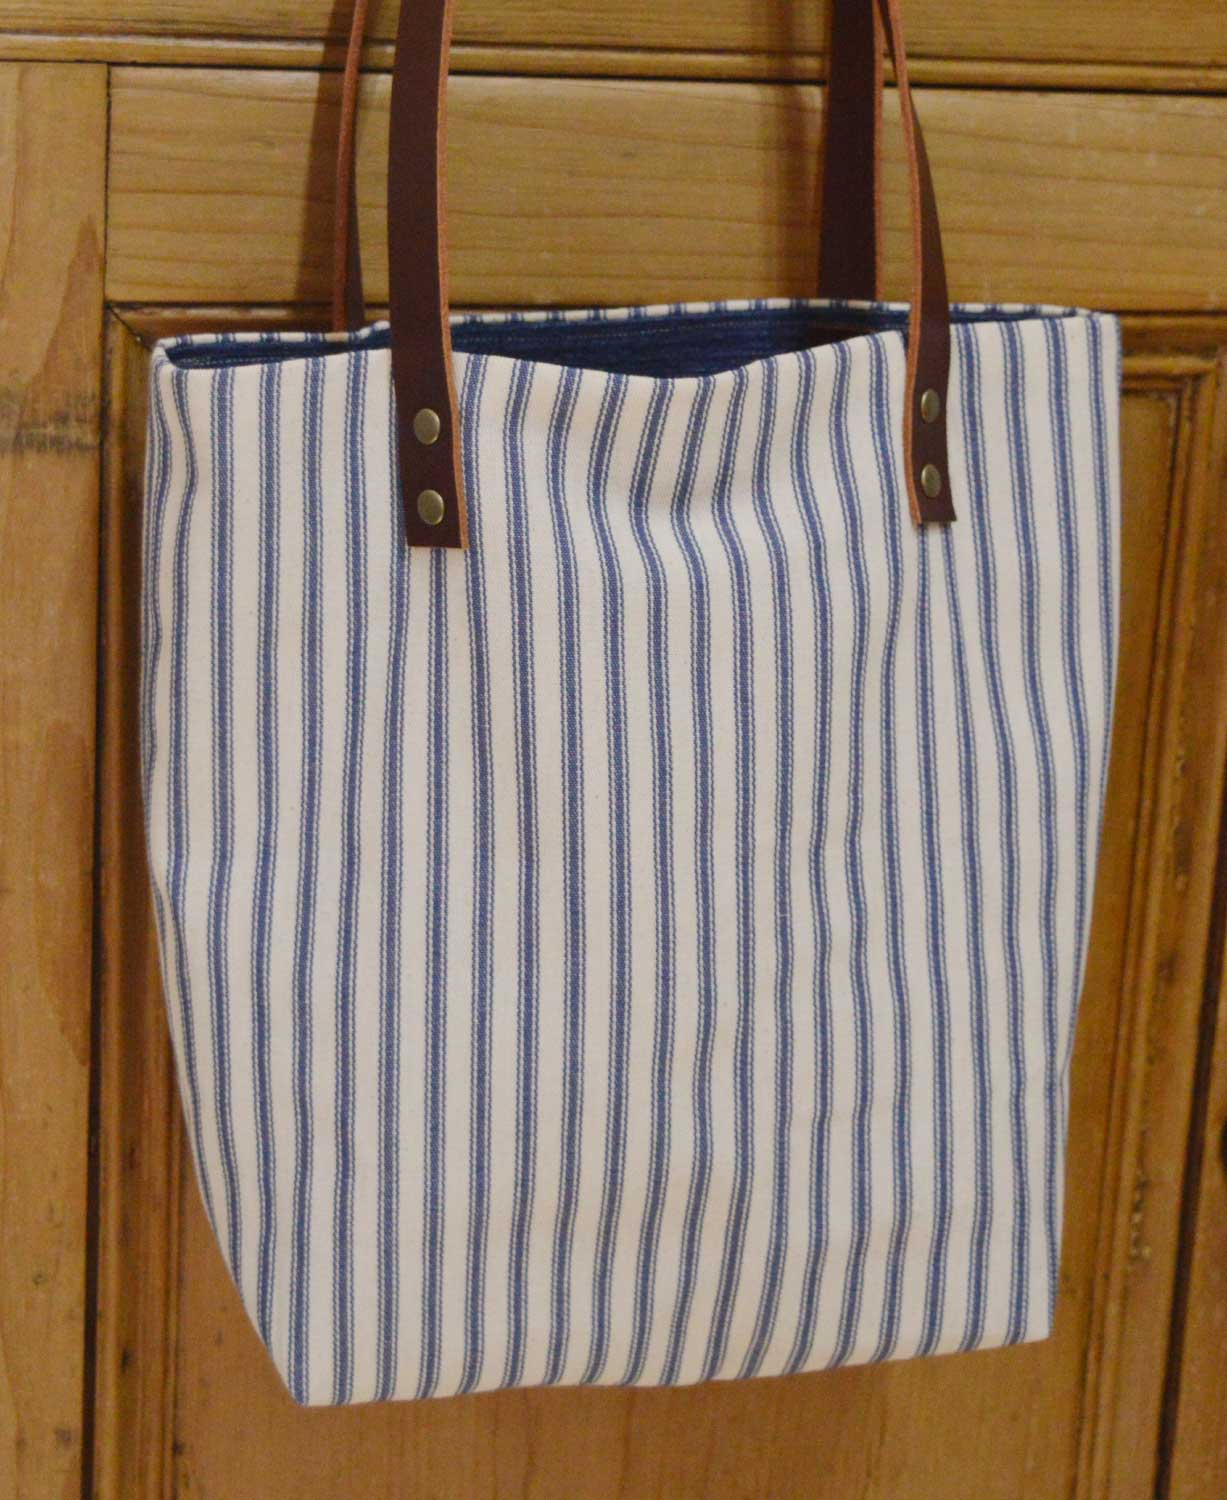 Sewn at Holm Sown - Genoa Tote Bag // stripe bag with brown leather handles